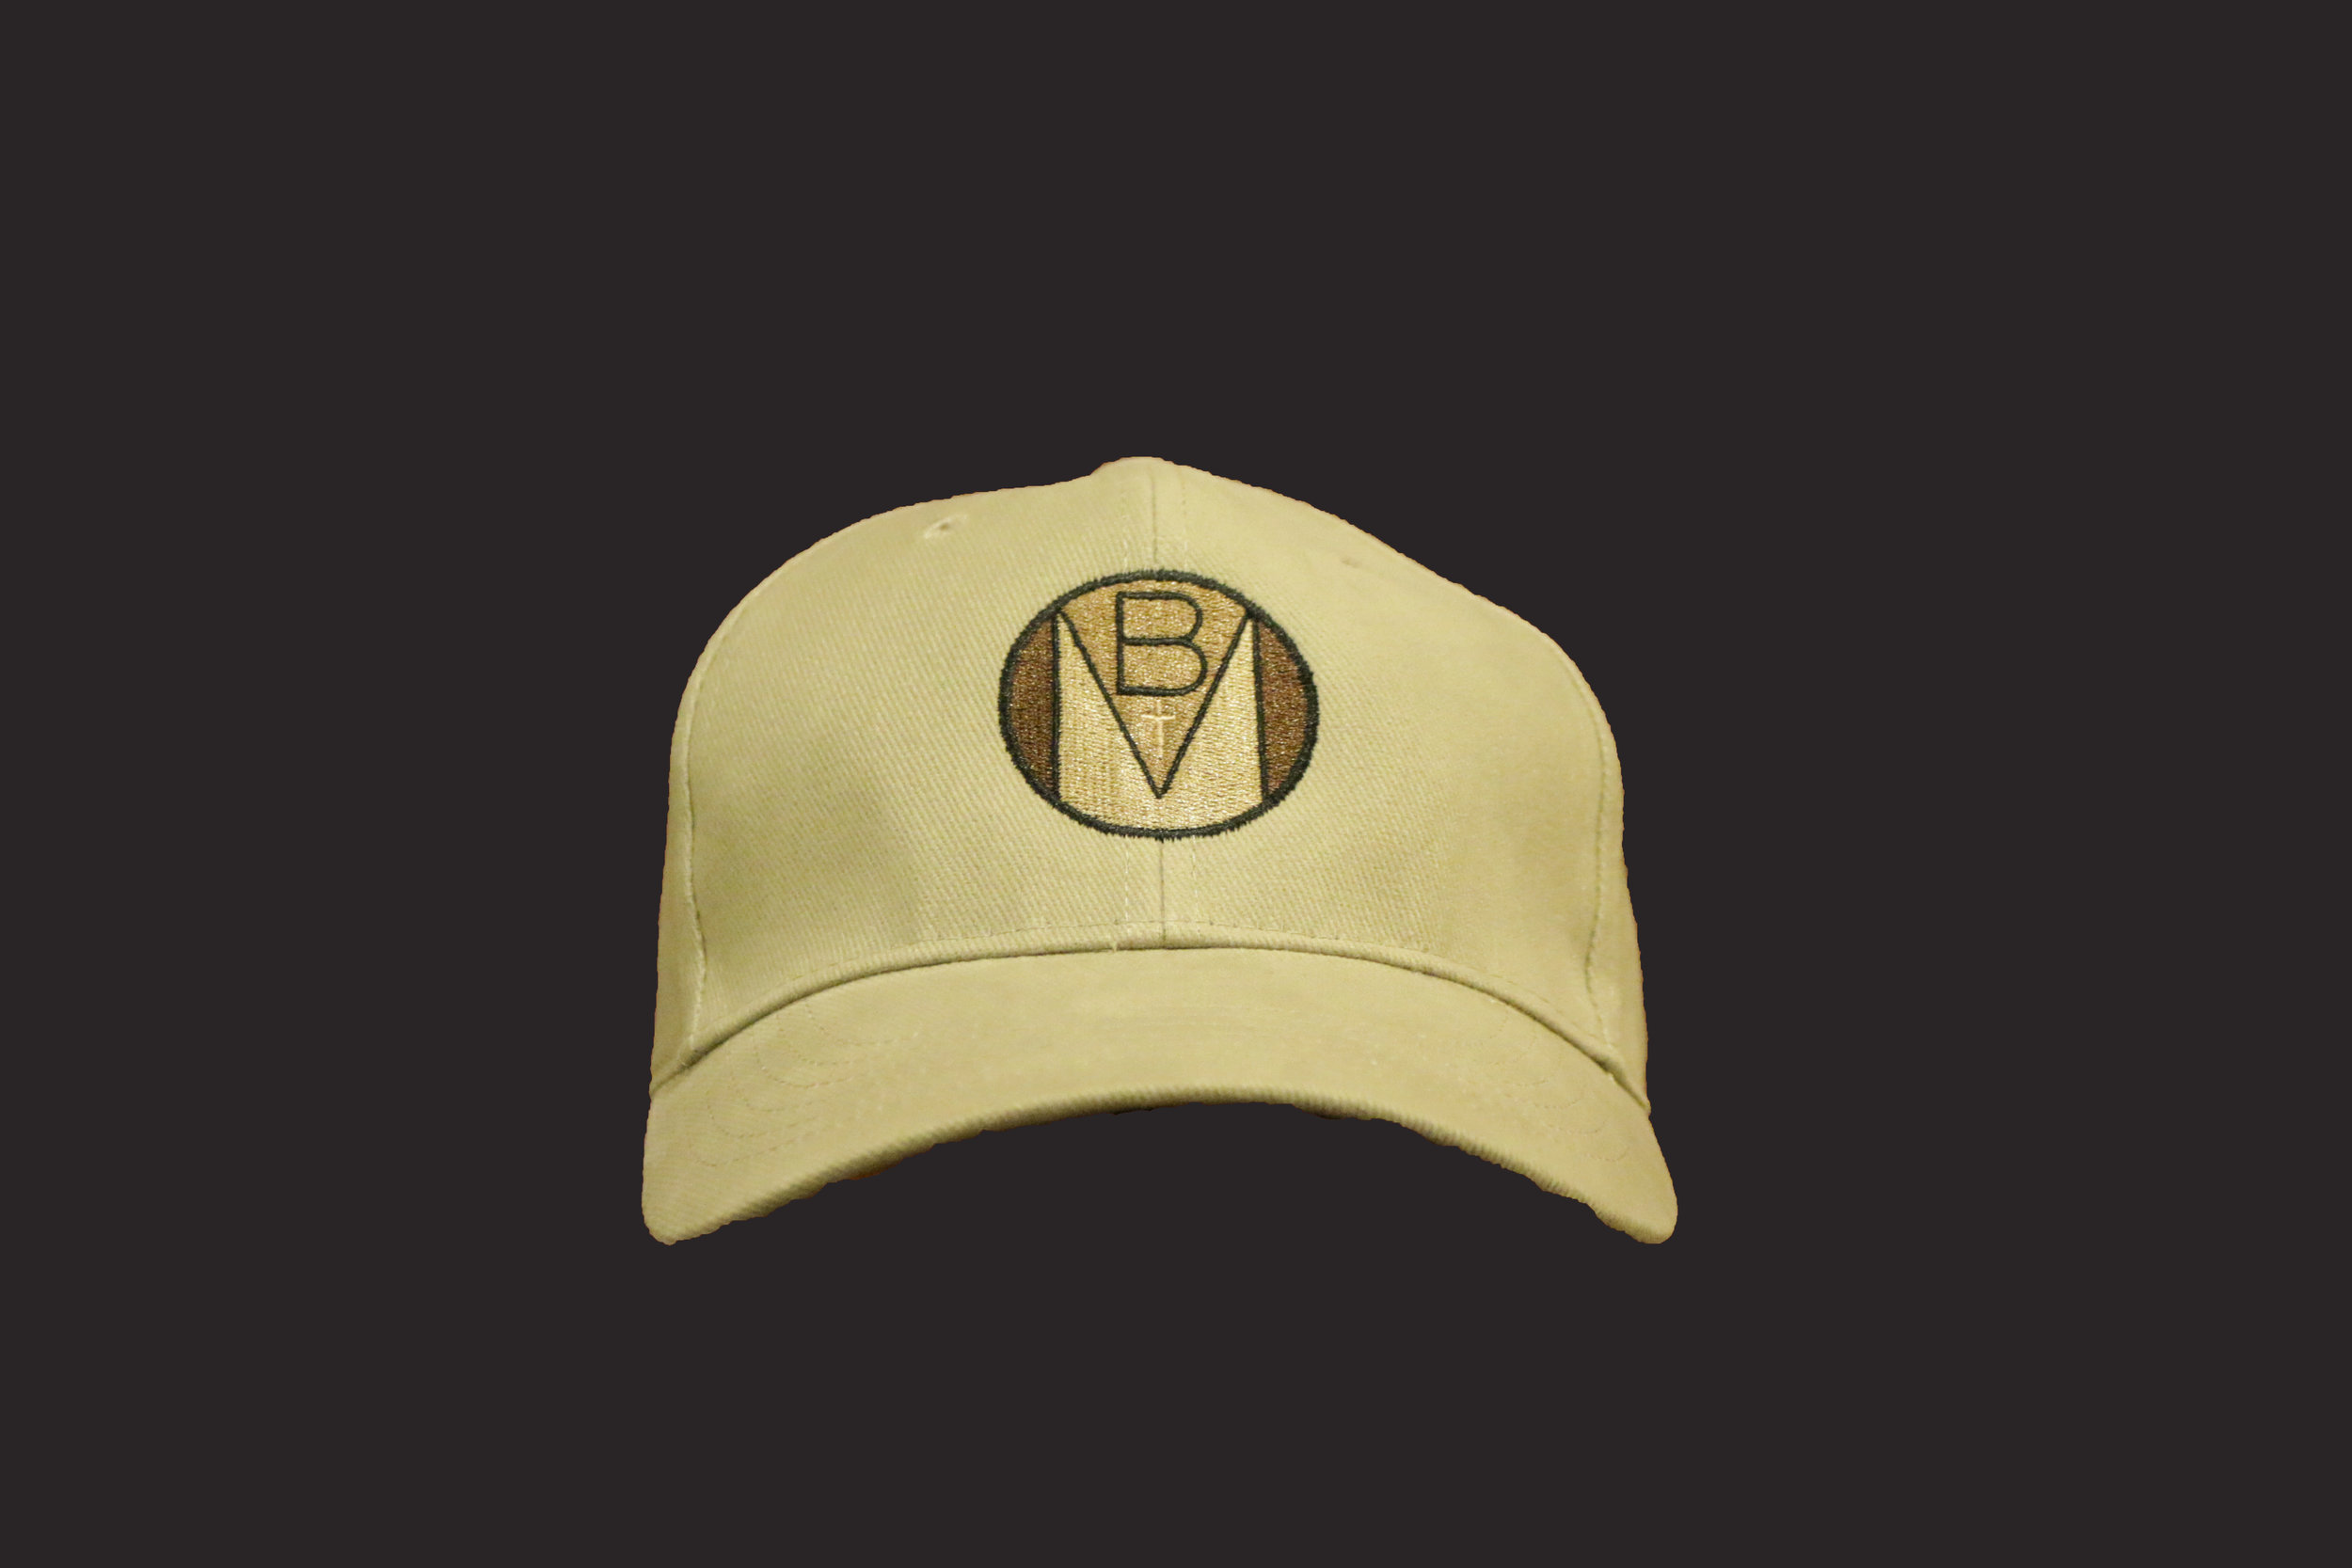 Buckle Hat - $20 - One Size Fits All